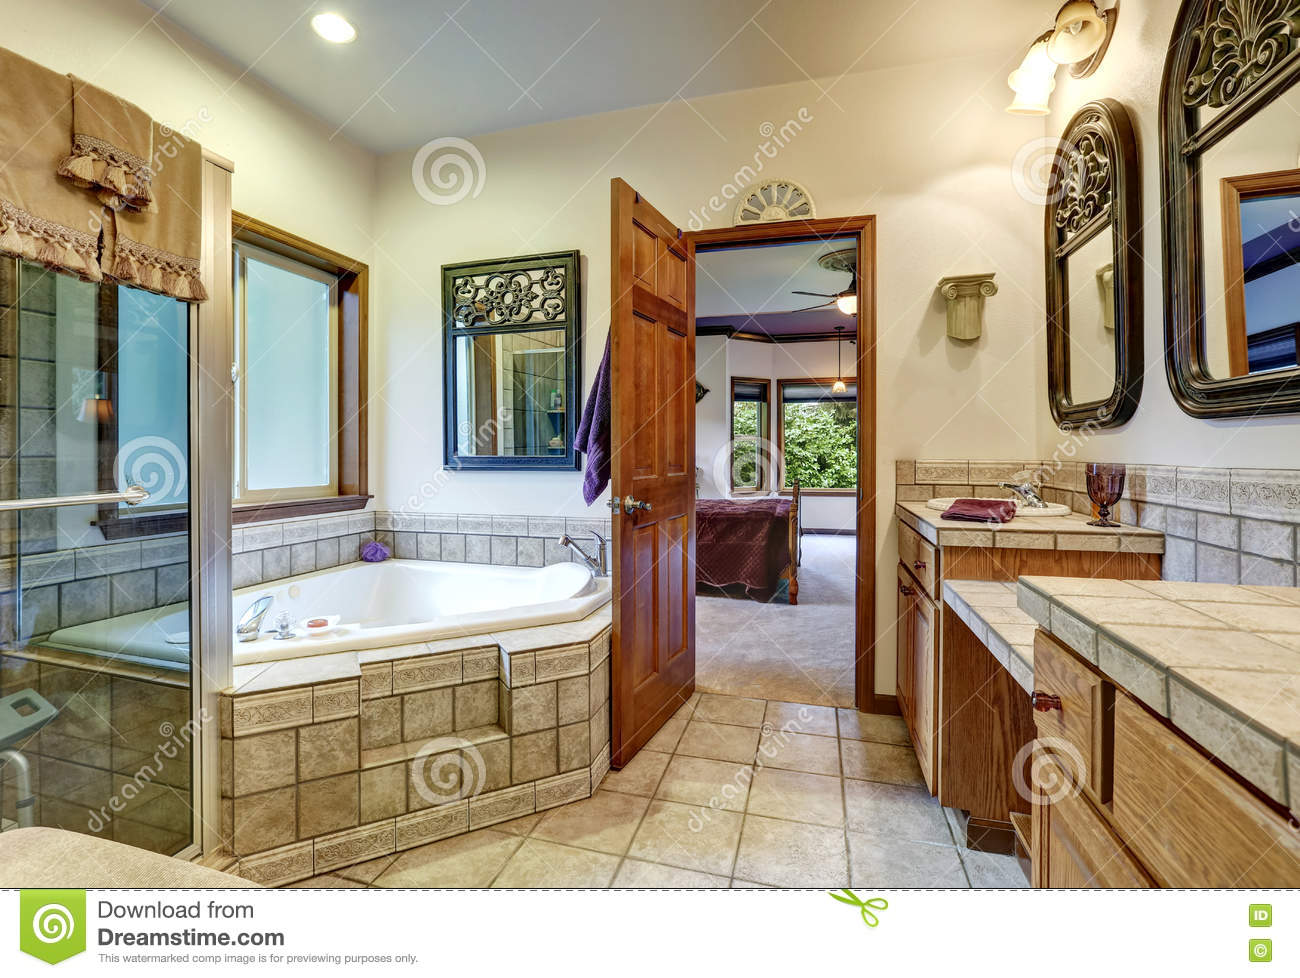 Jack And Jill Bath With Two Washbasins And Whirlpool Tub.